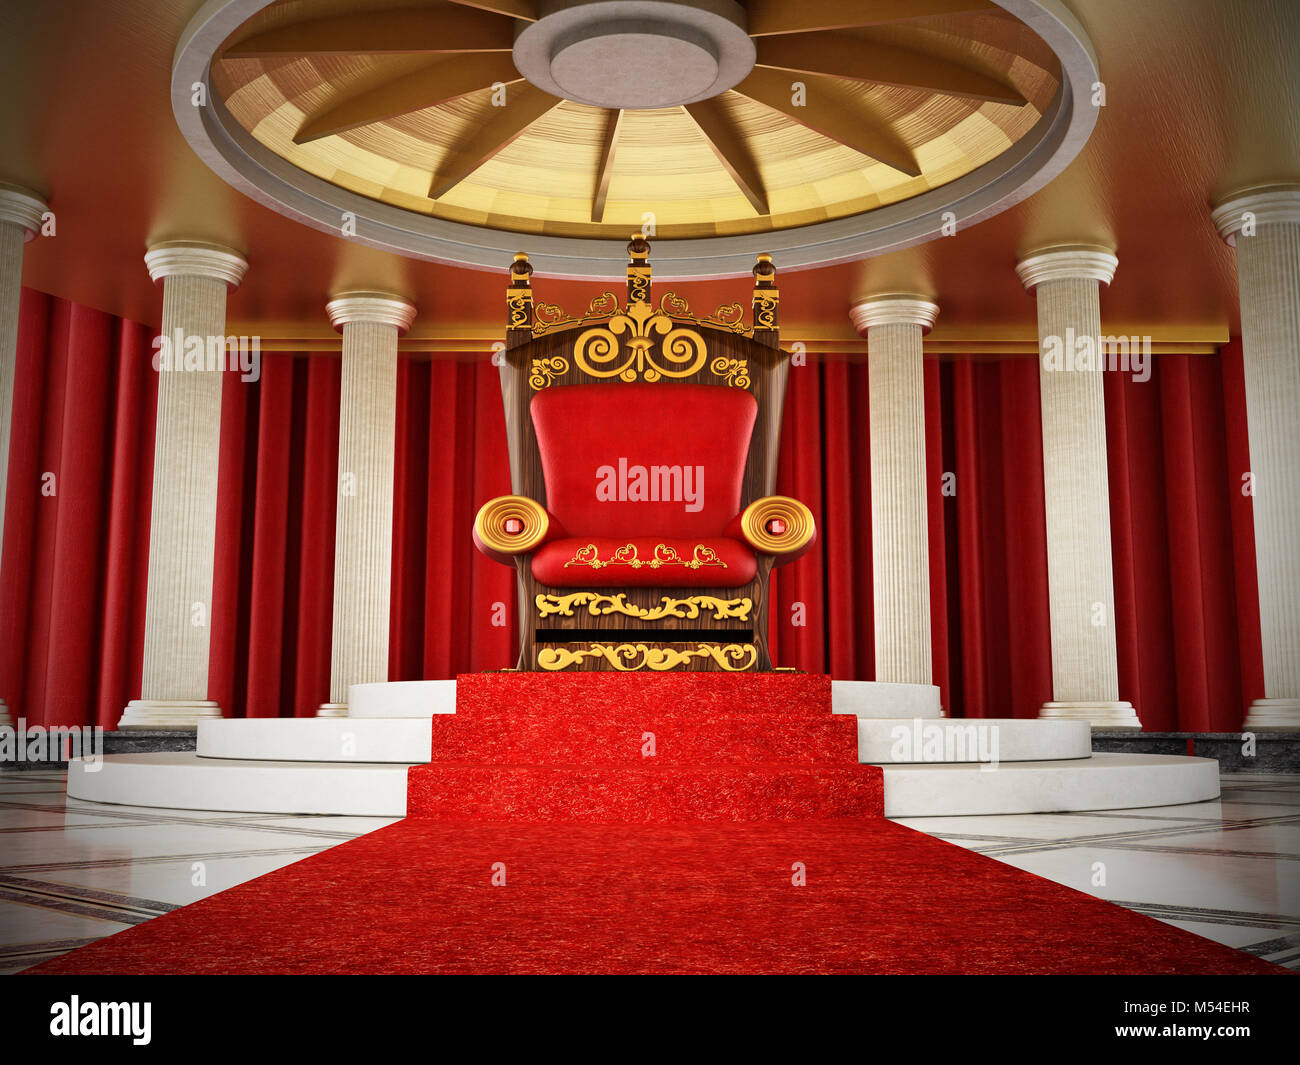 Roter Teppich Die Mannschaft Royal King Chair Stockfotos And Royal King Chair Bilder Alamy